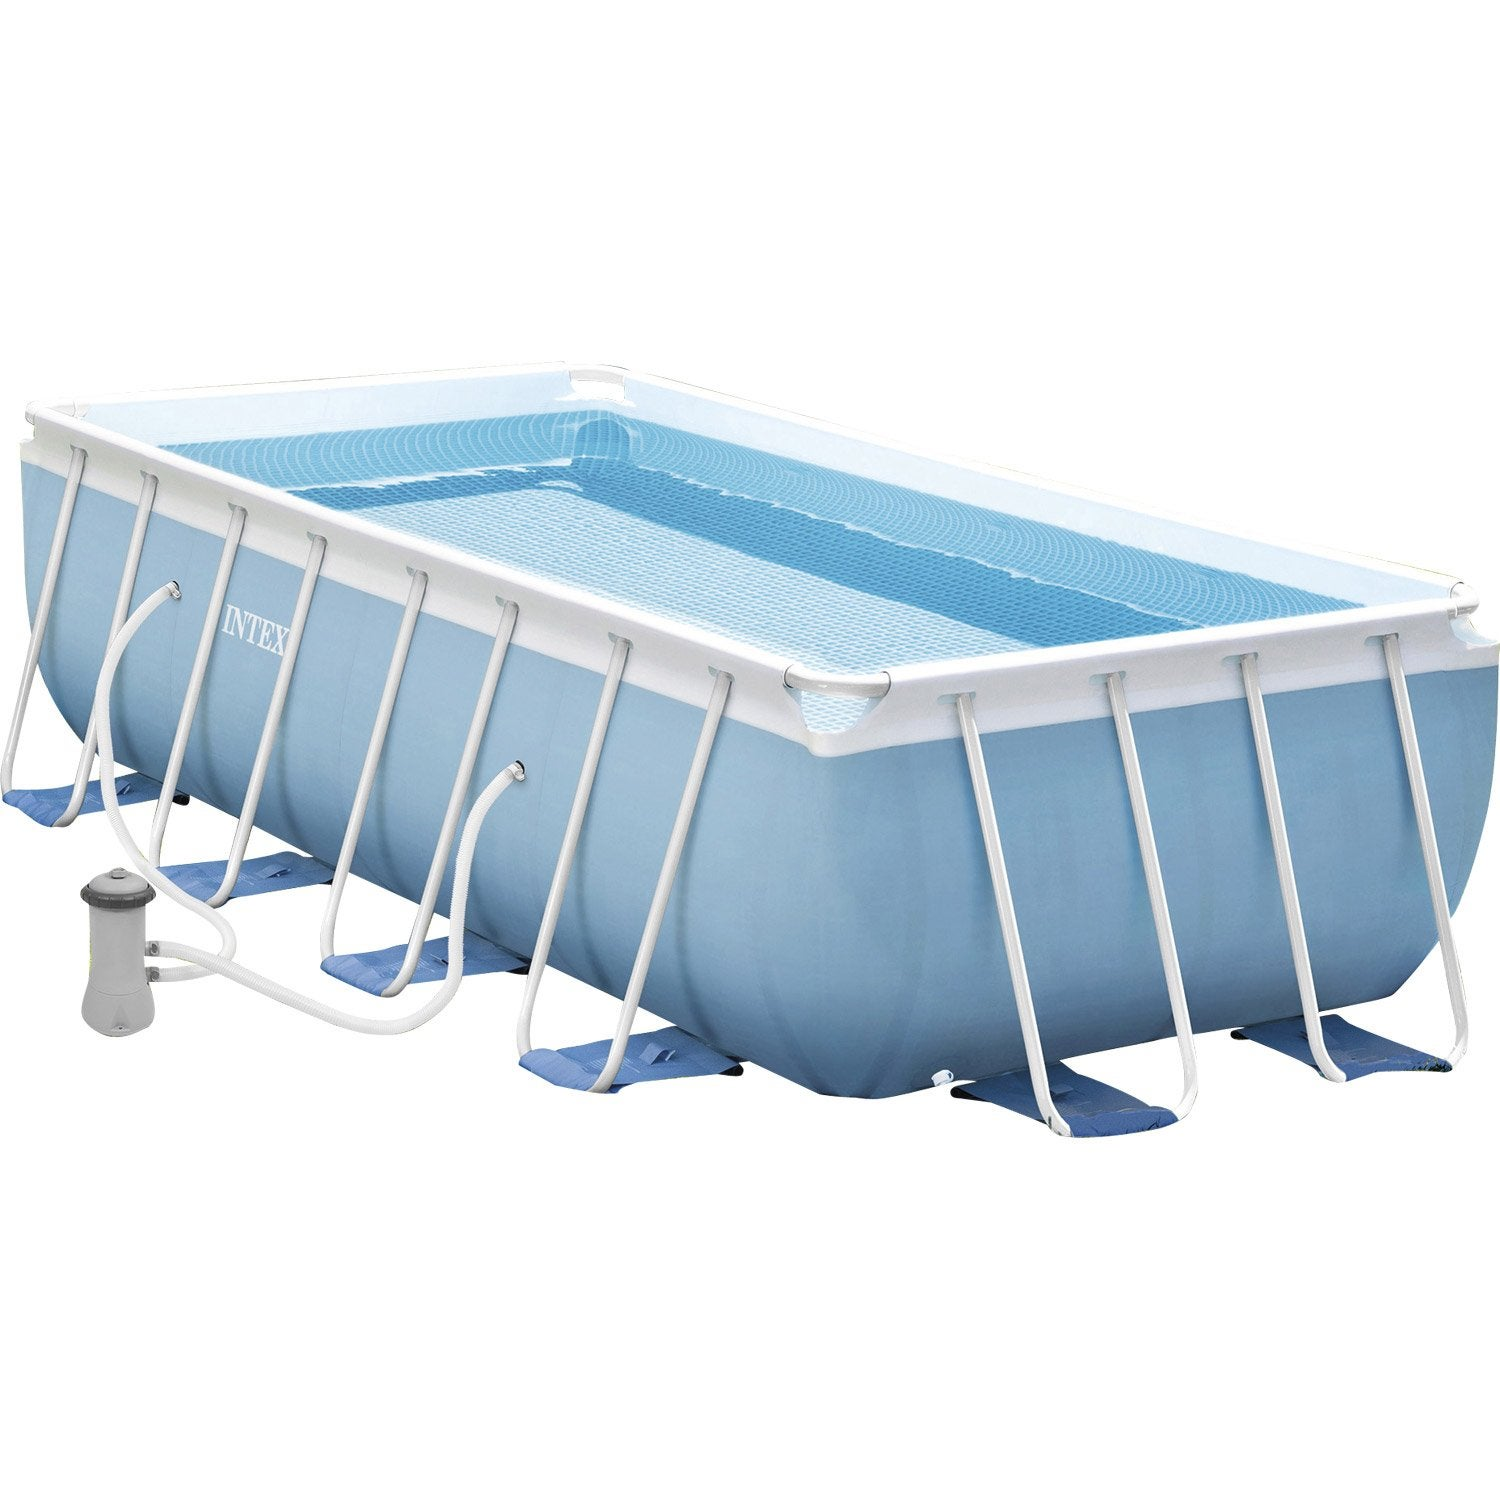 Piscine tubulaire rectangulaire auchan fr for Piscine gonflable auchan